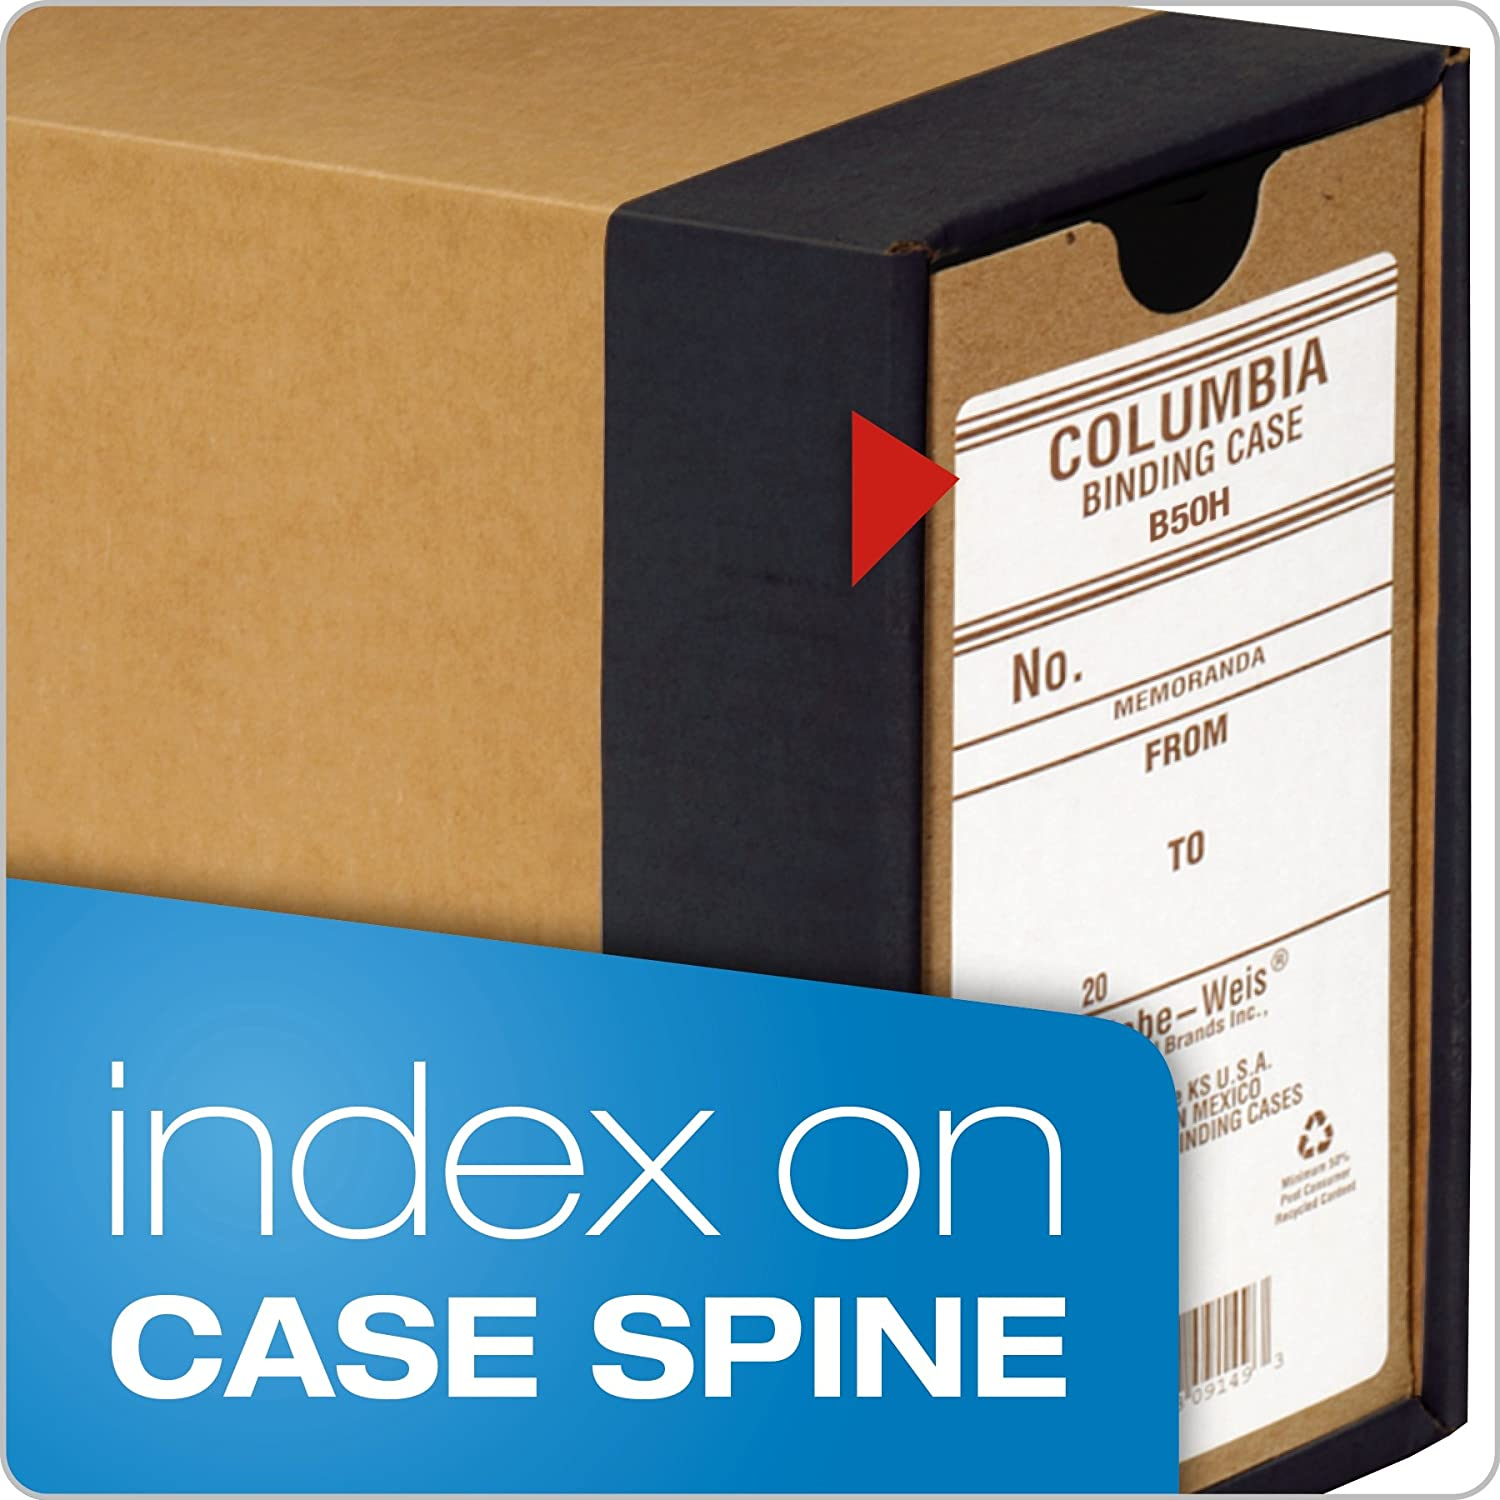 Amazon.com: Globe-Weis Columbia Binding Case, Letter Size, High Arch, Each (B50H): Office Products